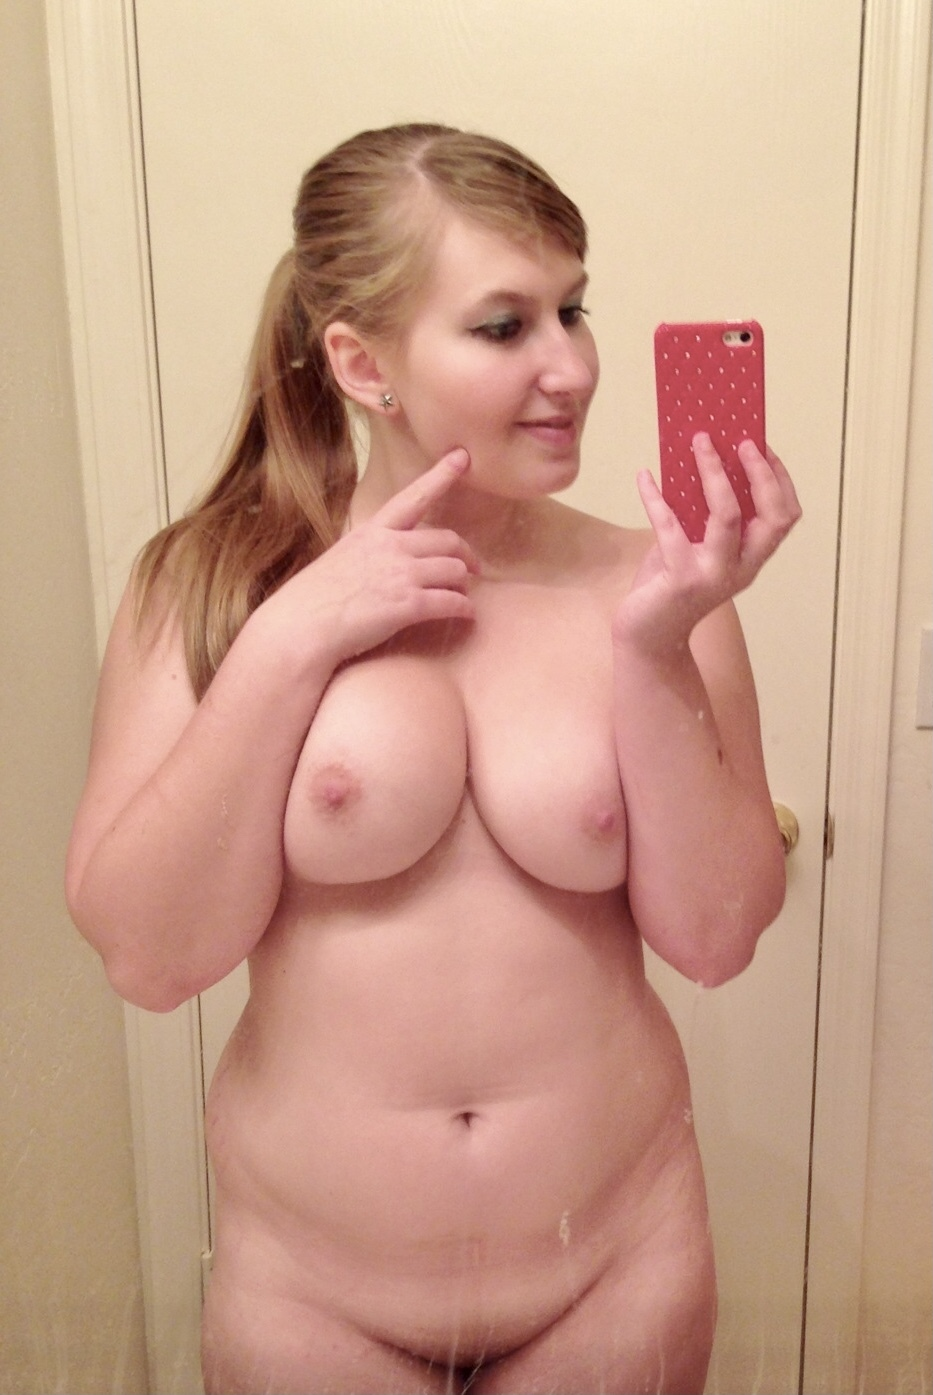 Selfie chubby nude 15 Inappropriate